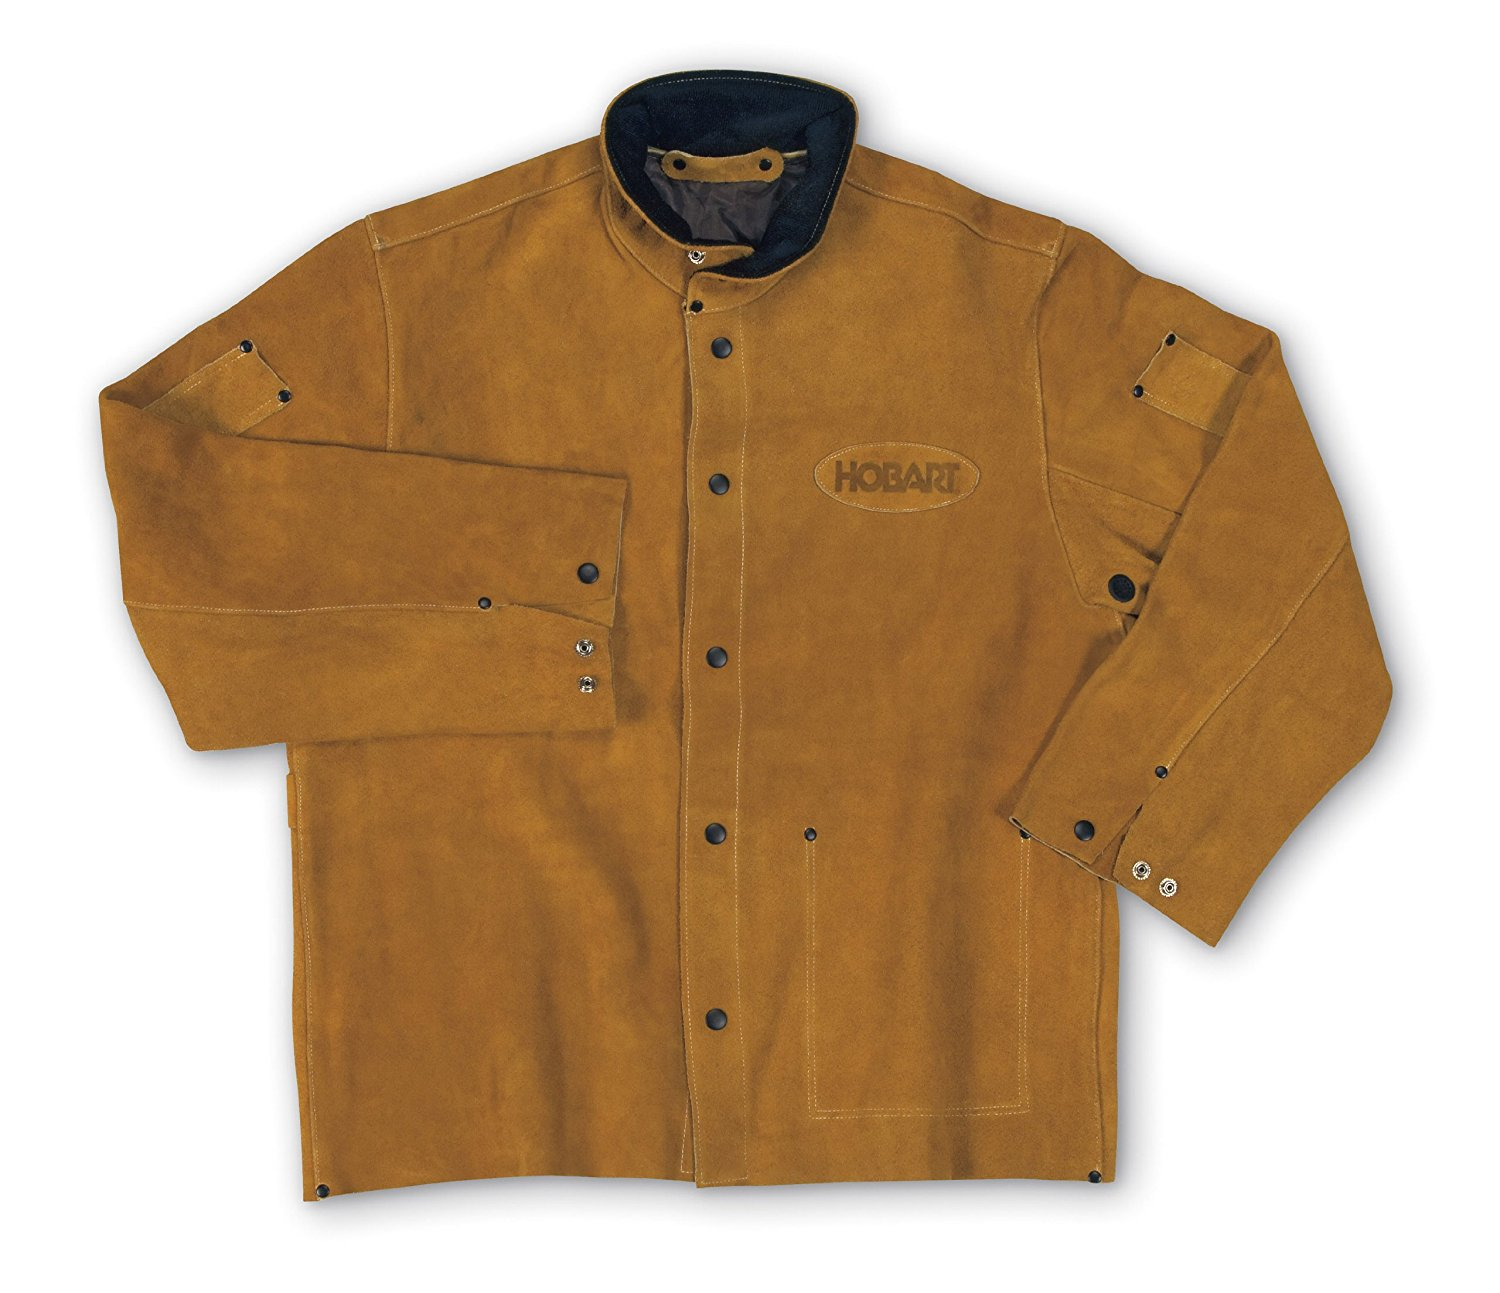 Hobart 770486 Leather Welding Jacket – XL